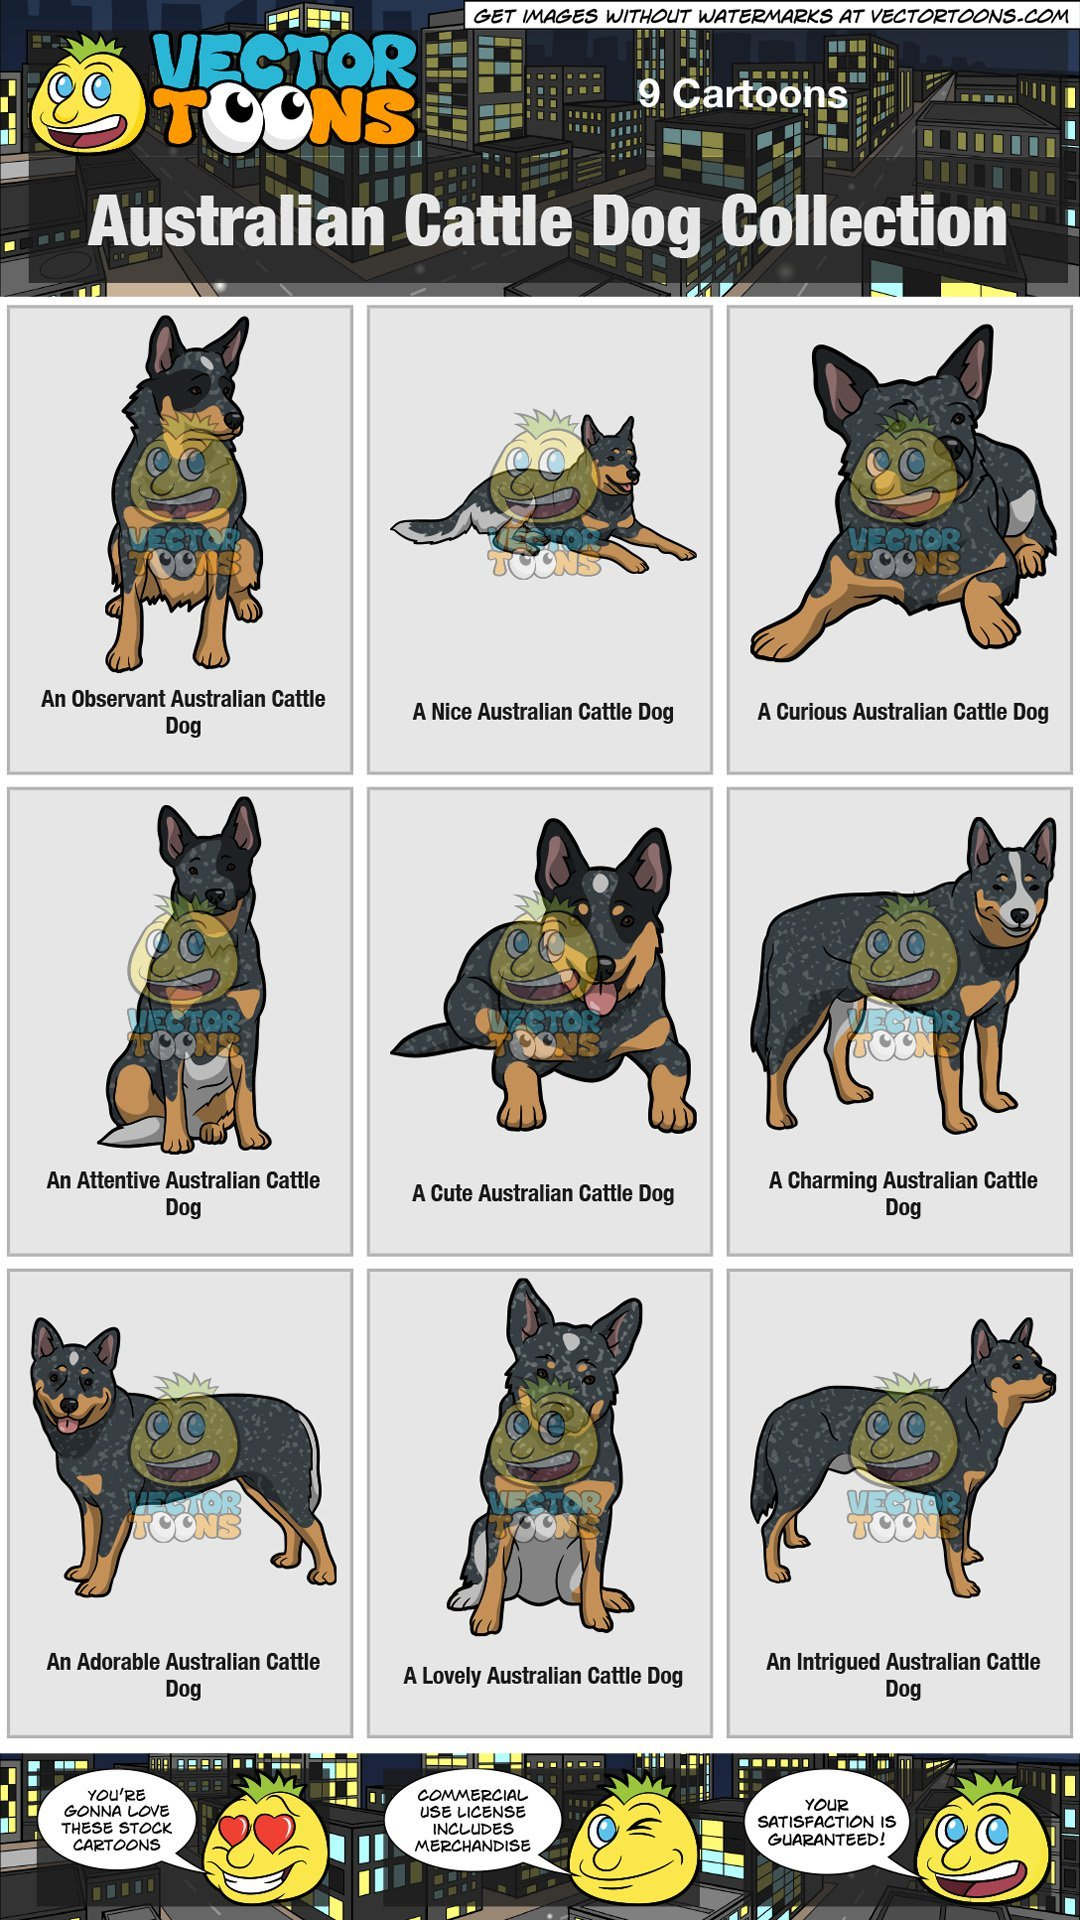 Australian Cattle Dog Collection.